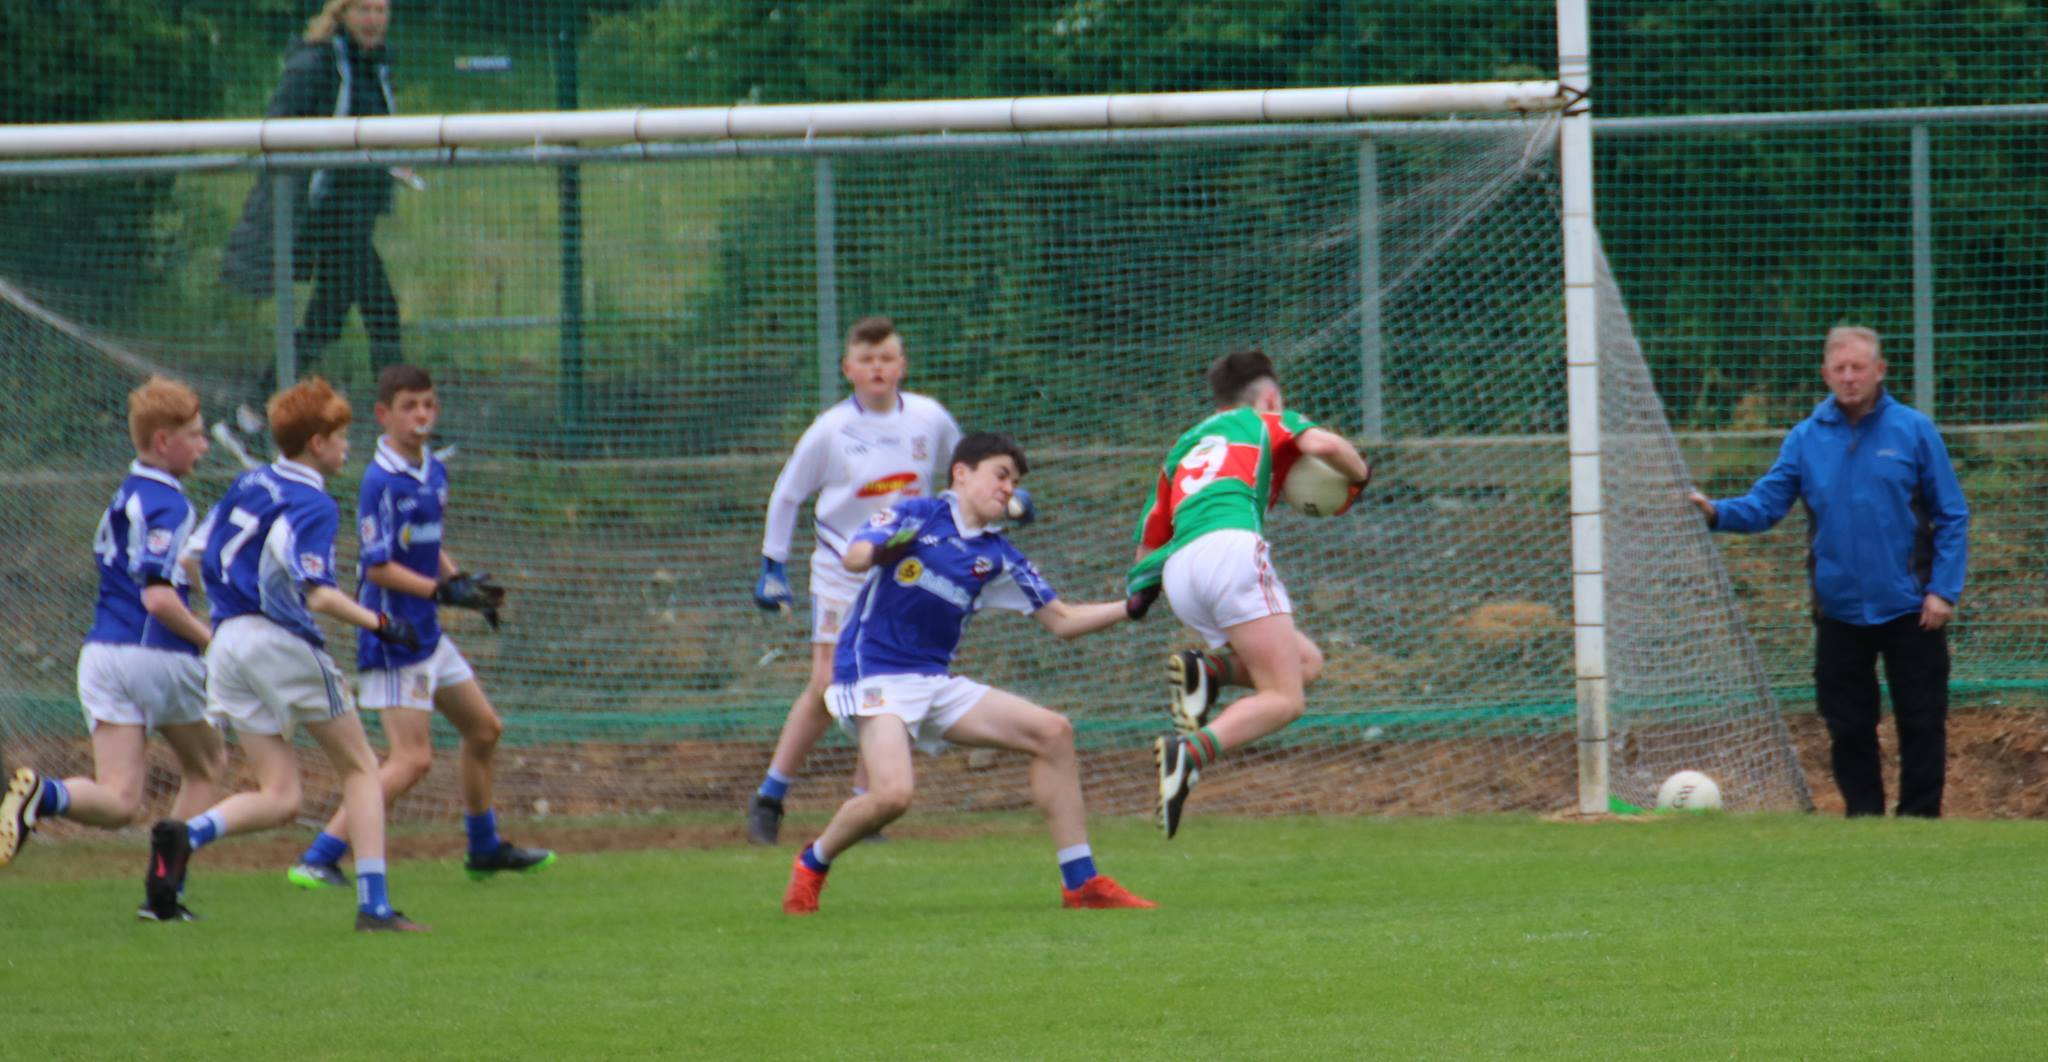 Suncroft v Celbridge Feile A Shield 12